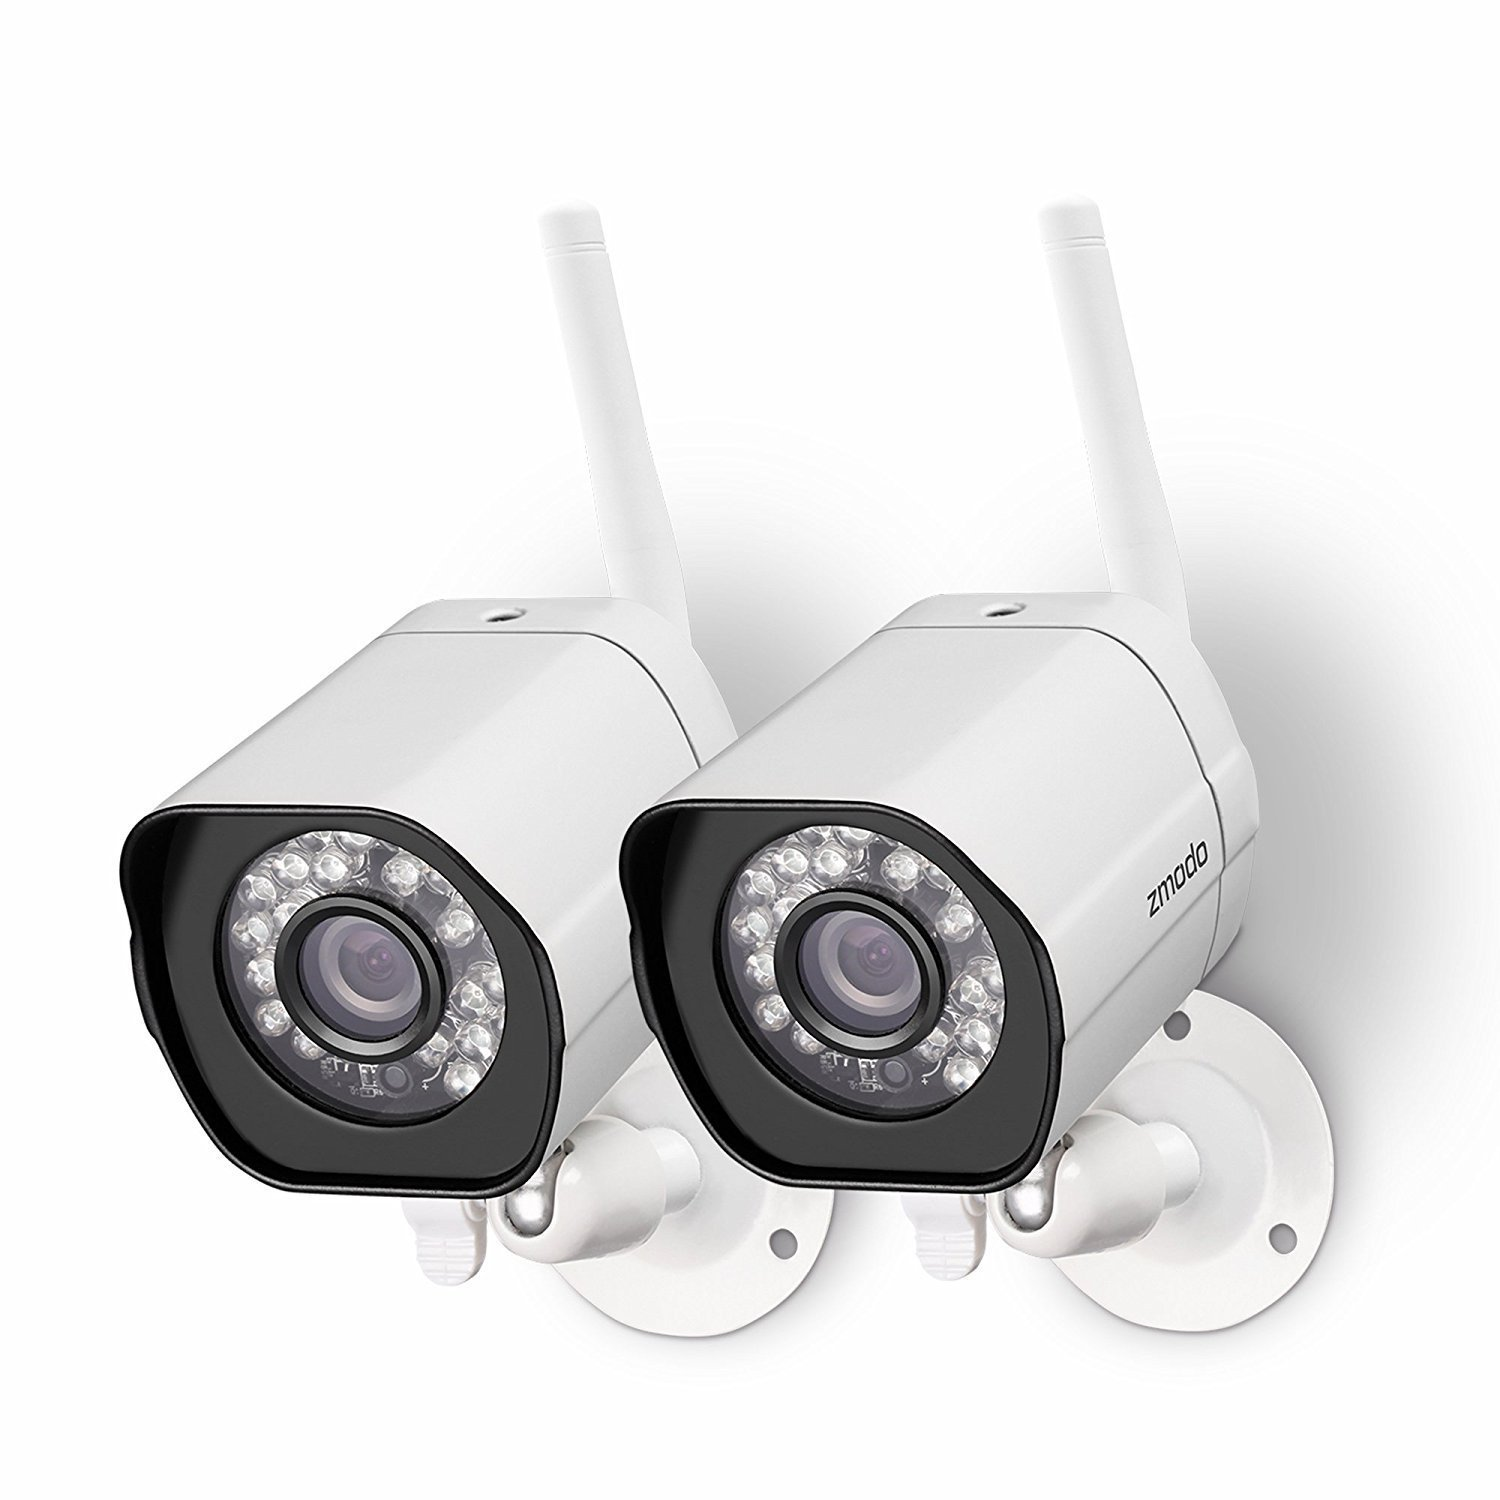 Zmodo Wireless Security Camera 防犯カメラ System ( 2 pack ) Smart HD Outdoor WiFi IP Cameras with Night Vision 夜間視力 (並行輸入品) B07BVFH2JS  2 Outdoor Cam One Size